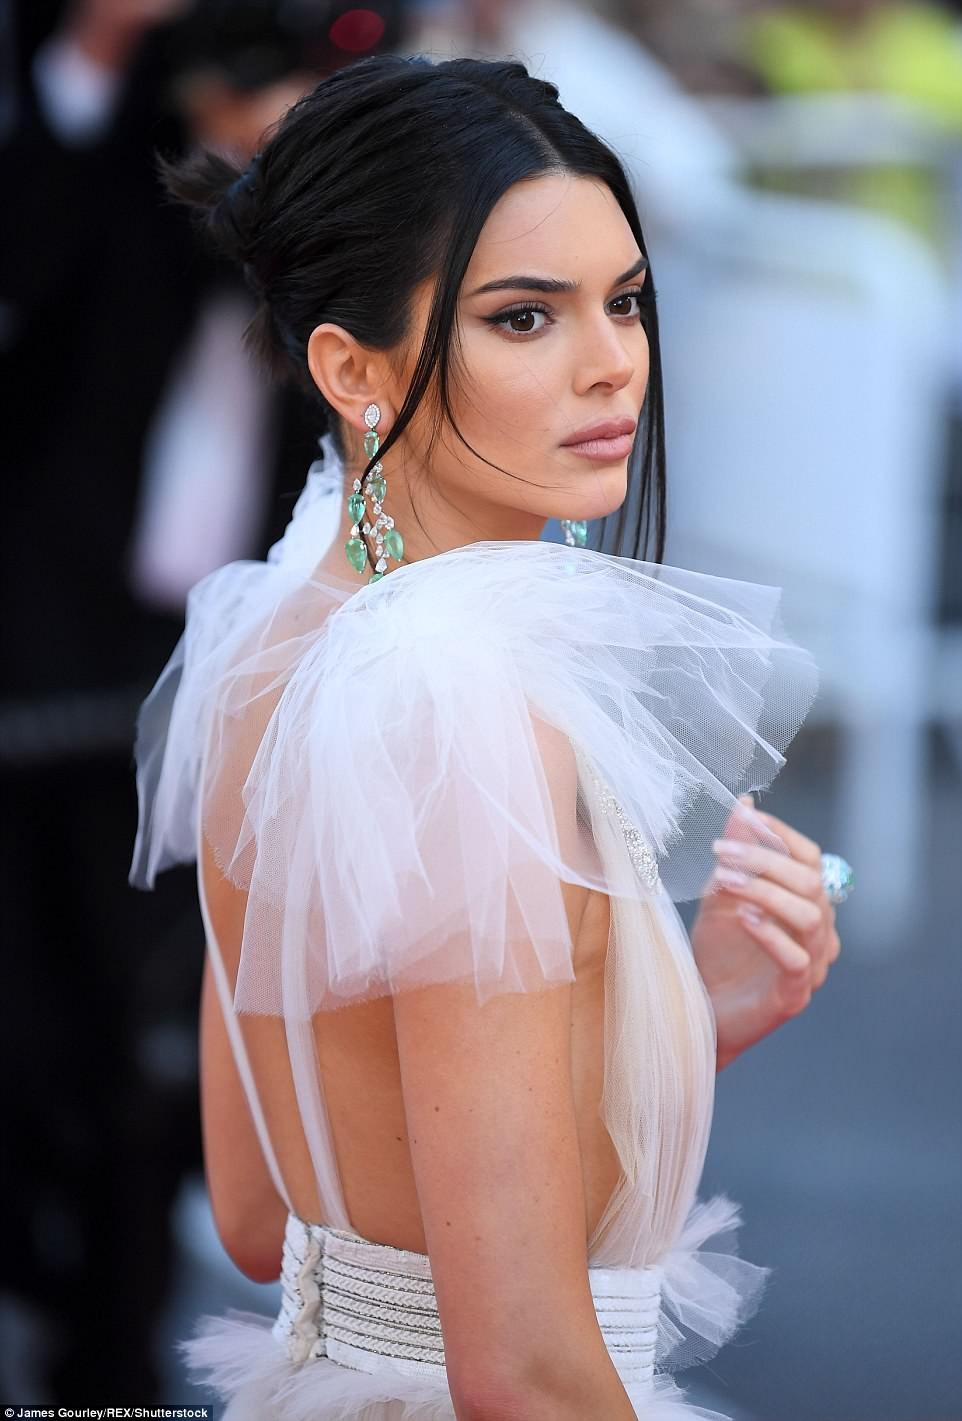 Kendall Jenner goes braless in daring transparent gown for the Girls of the Sun premiere at 71st Cannes Film Festival (Photos)